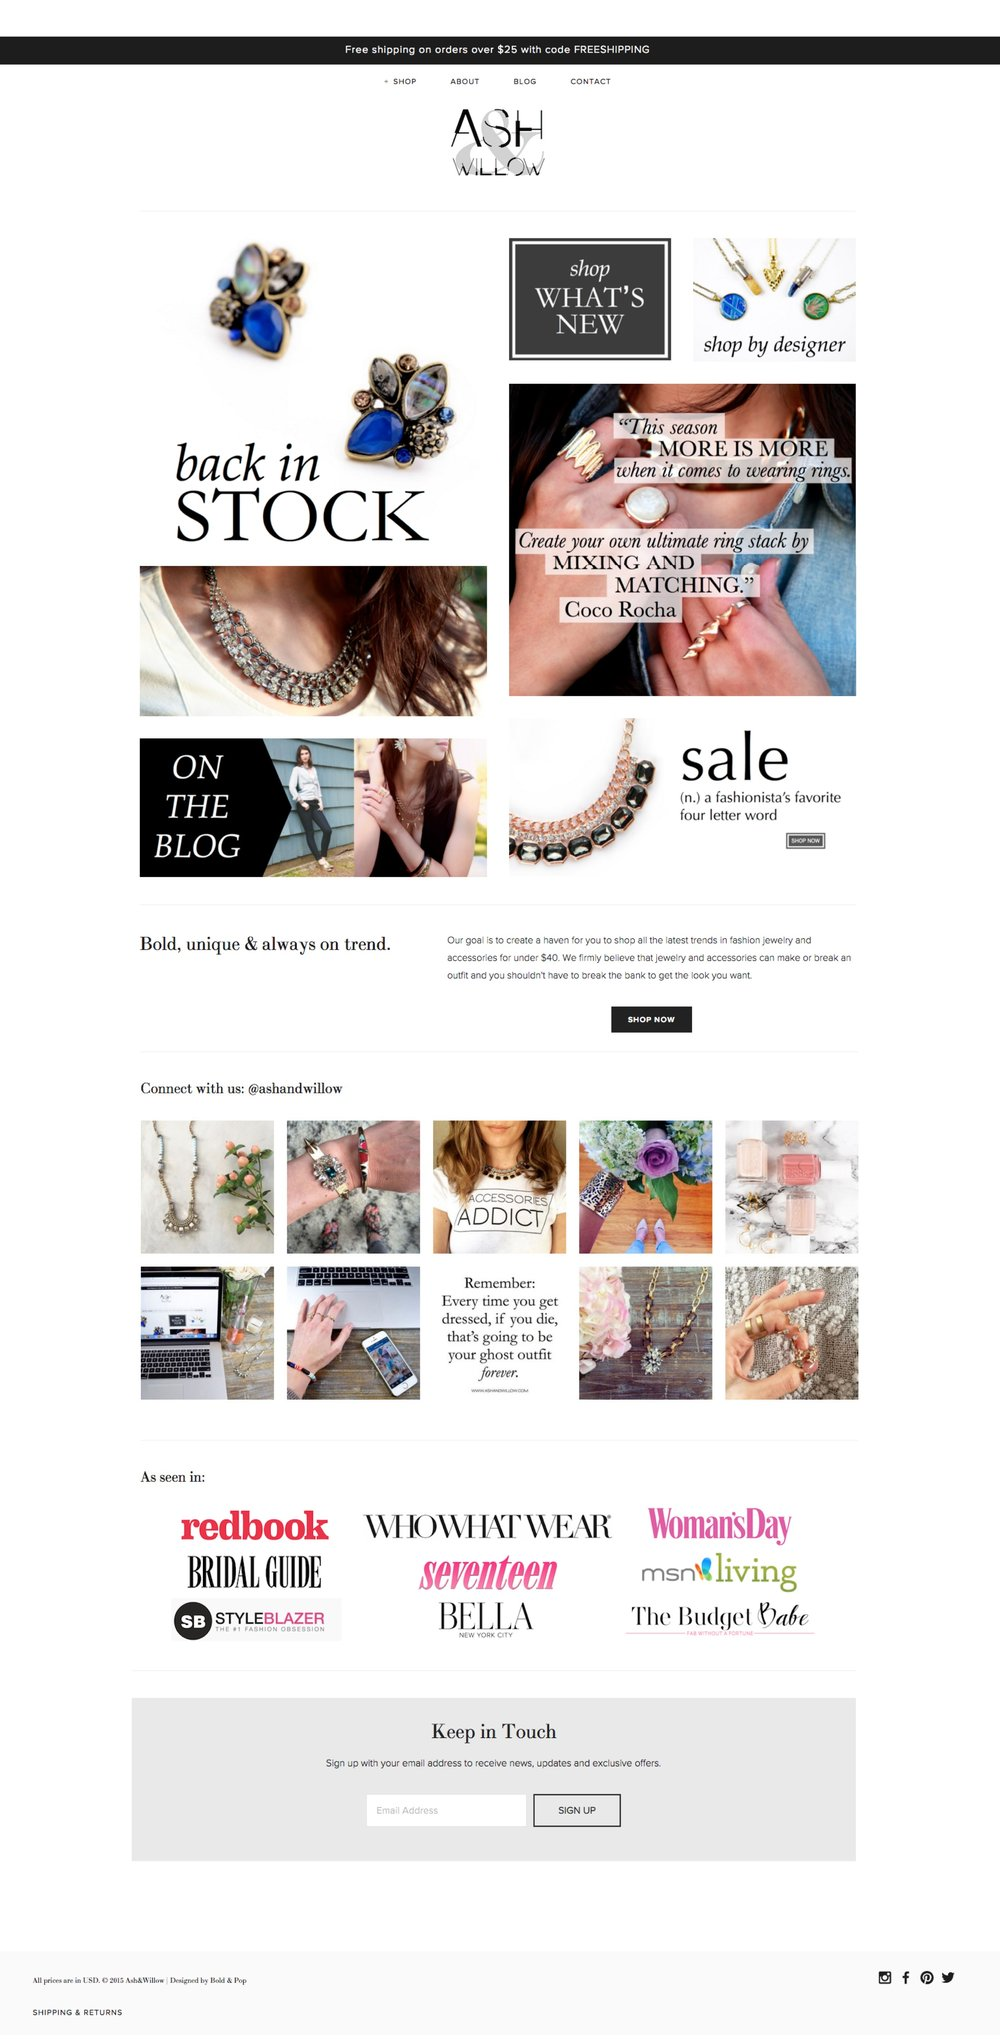 Jewelry and Accessories Boutique Branding & Website Design